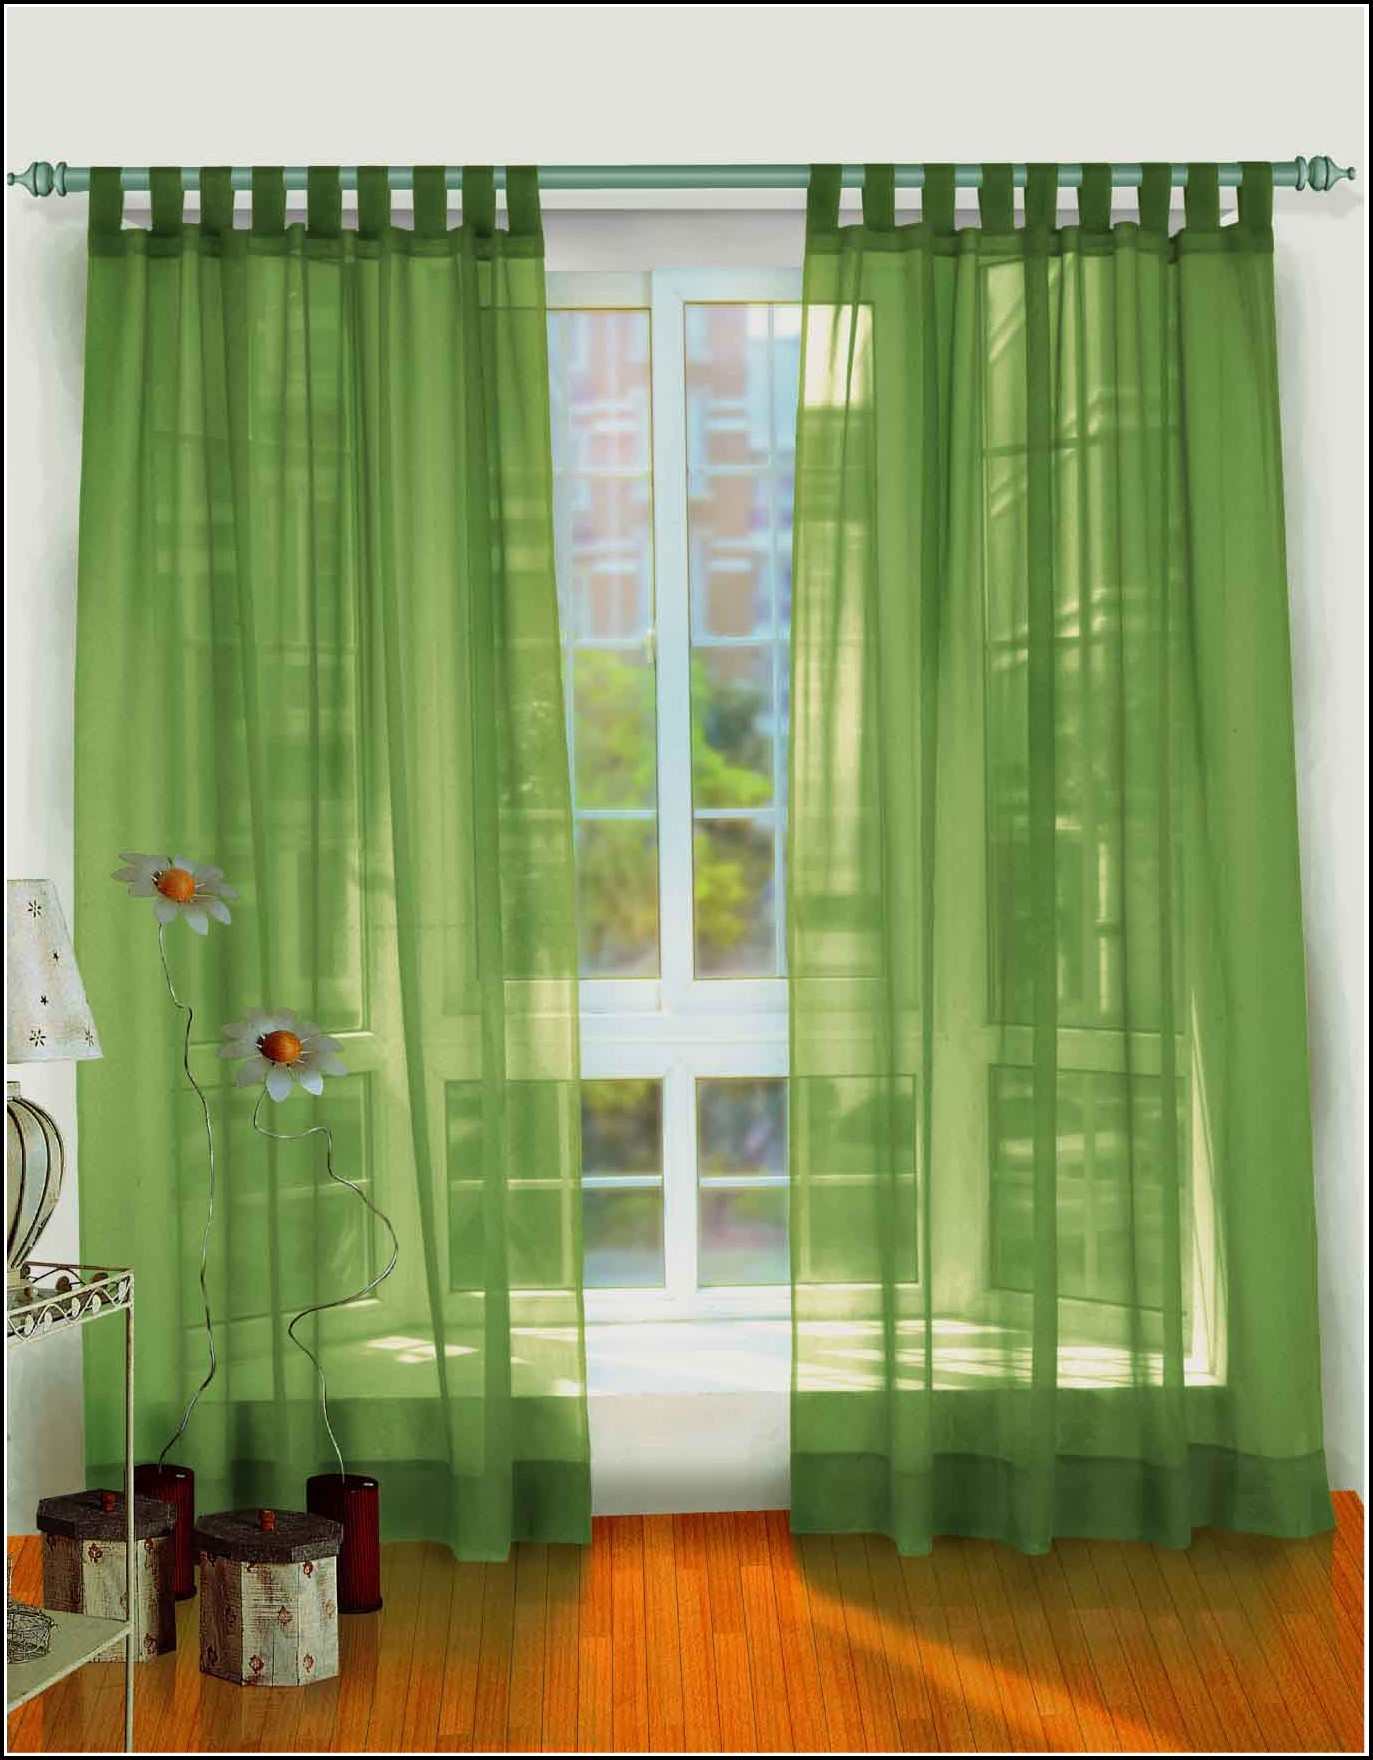 Curtain Styles For Bedroom Windows